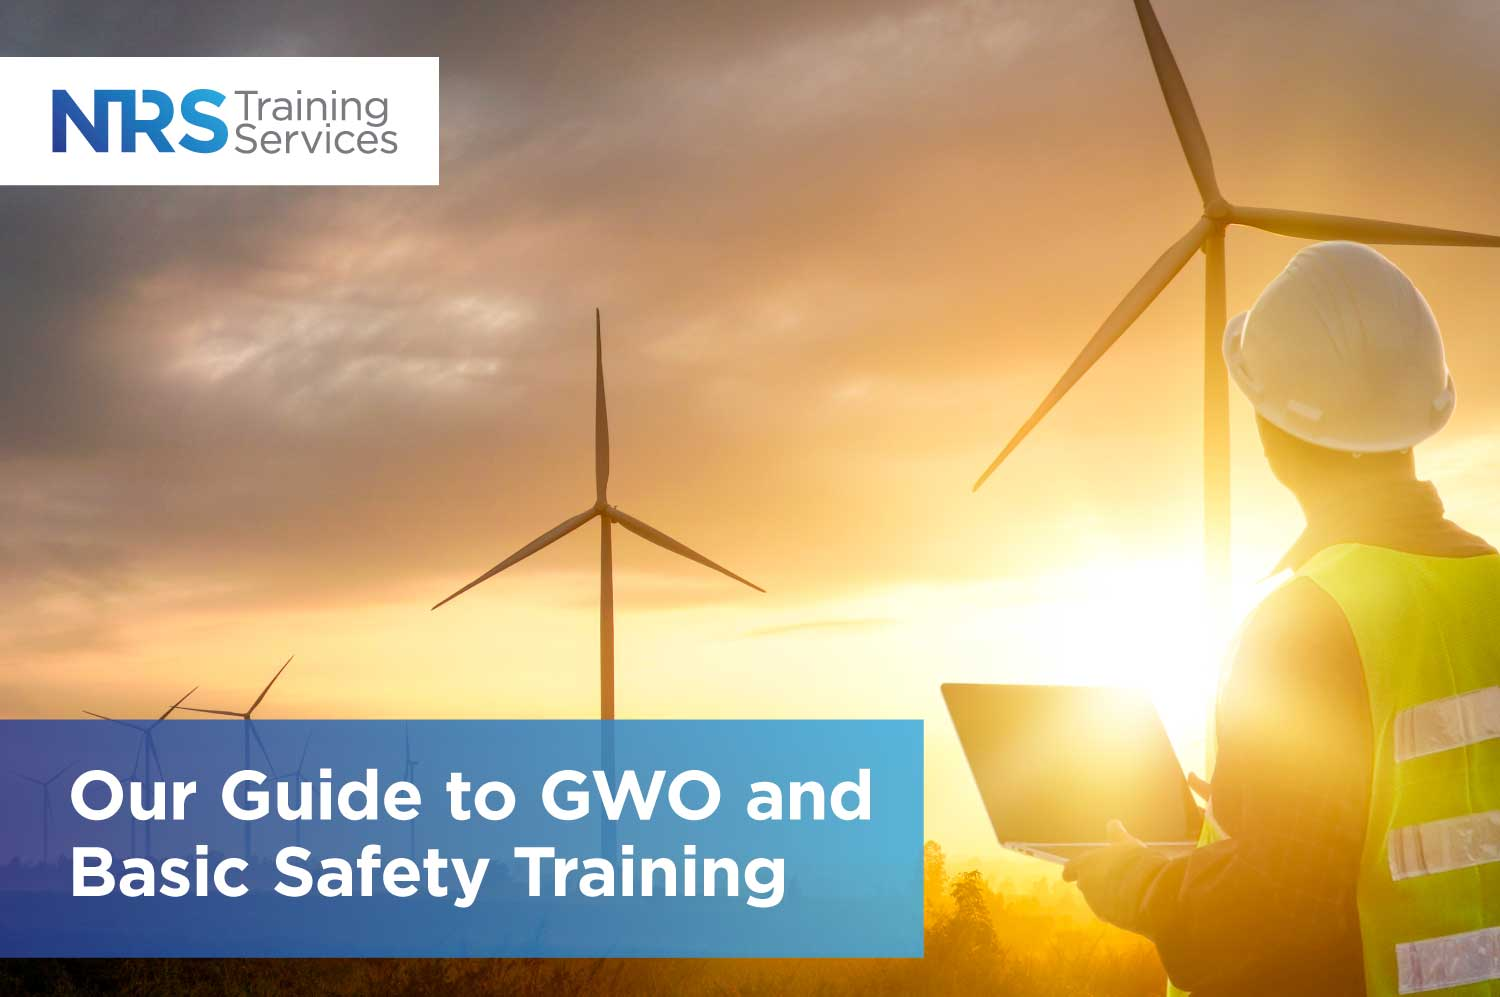 Our Guide to GWO and Basic Safety Training